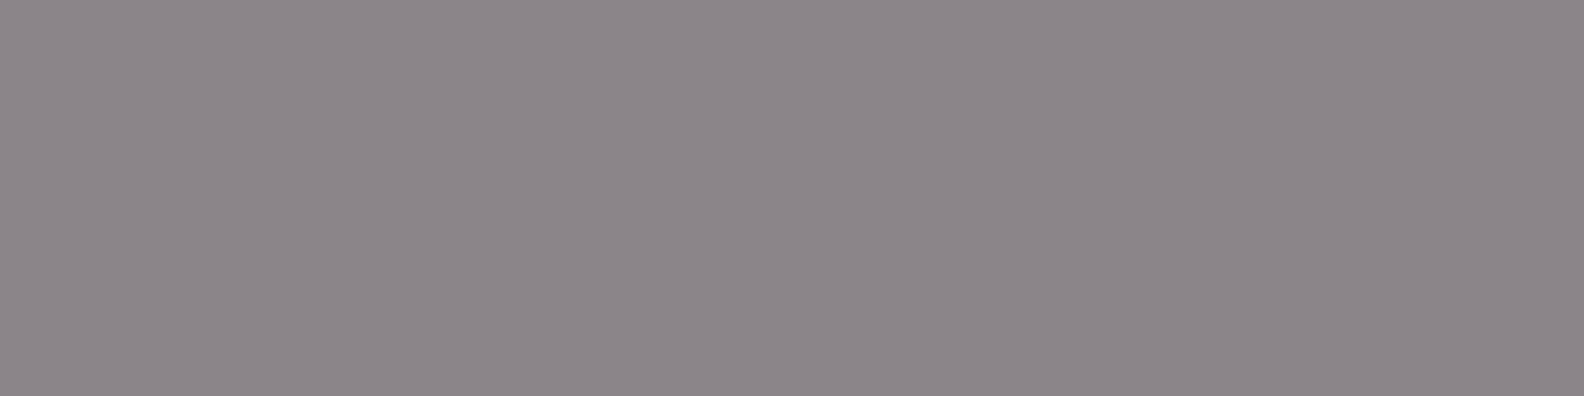 1584x396 Taupe Gray Solid Color Background